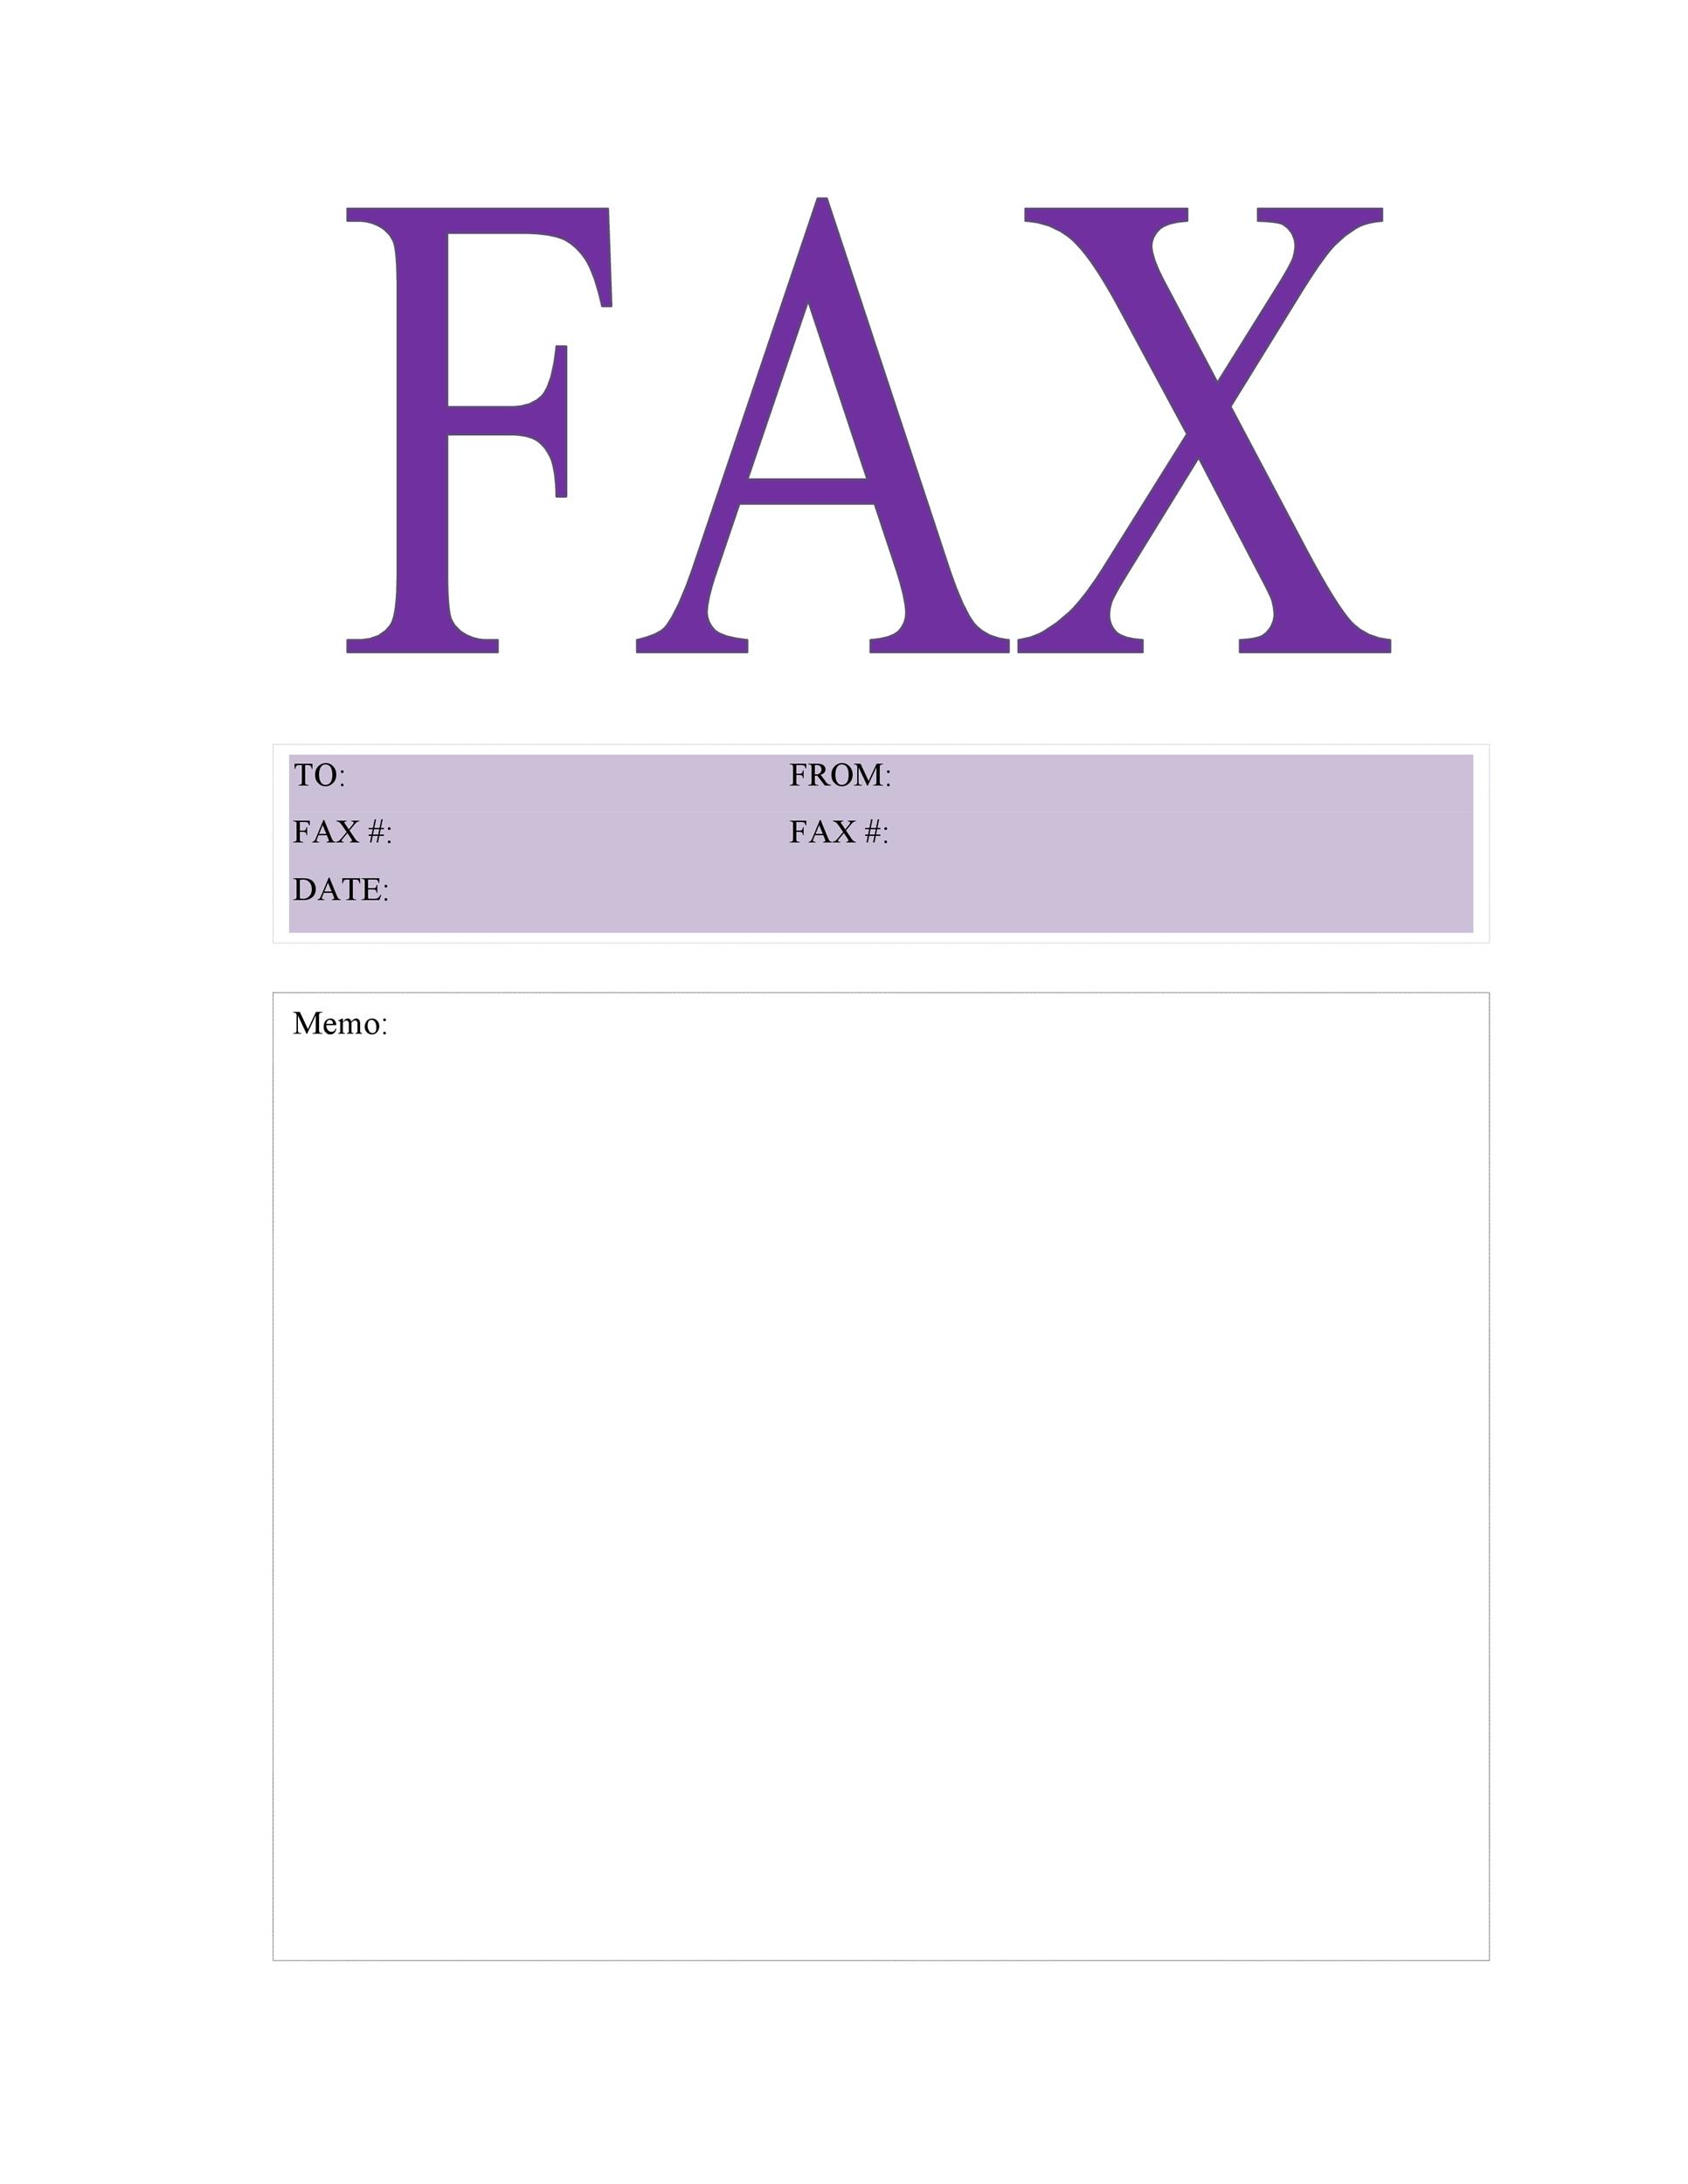 Fax Cover Sheets Faxcover Fax Cover Sheet  Examples  Graphic